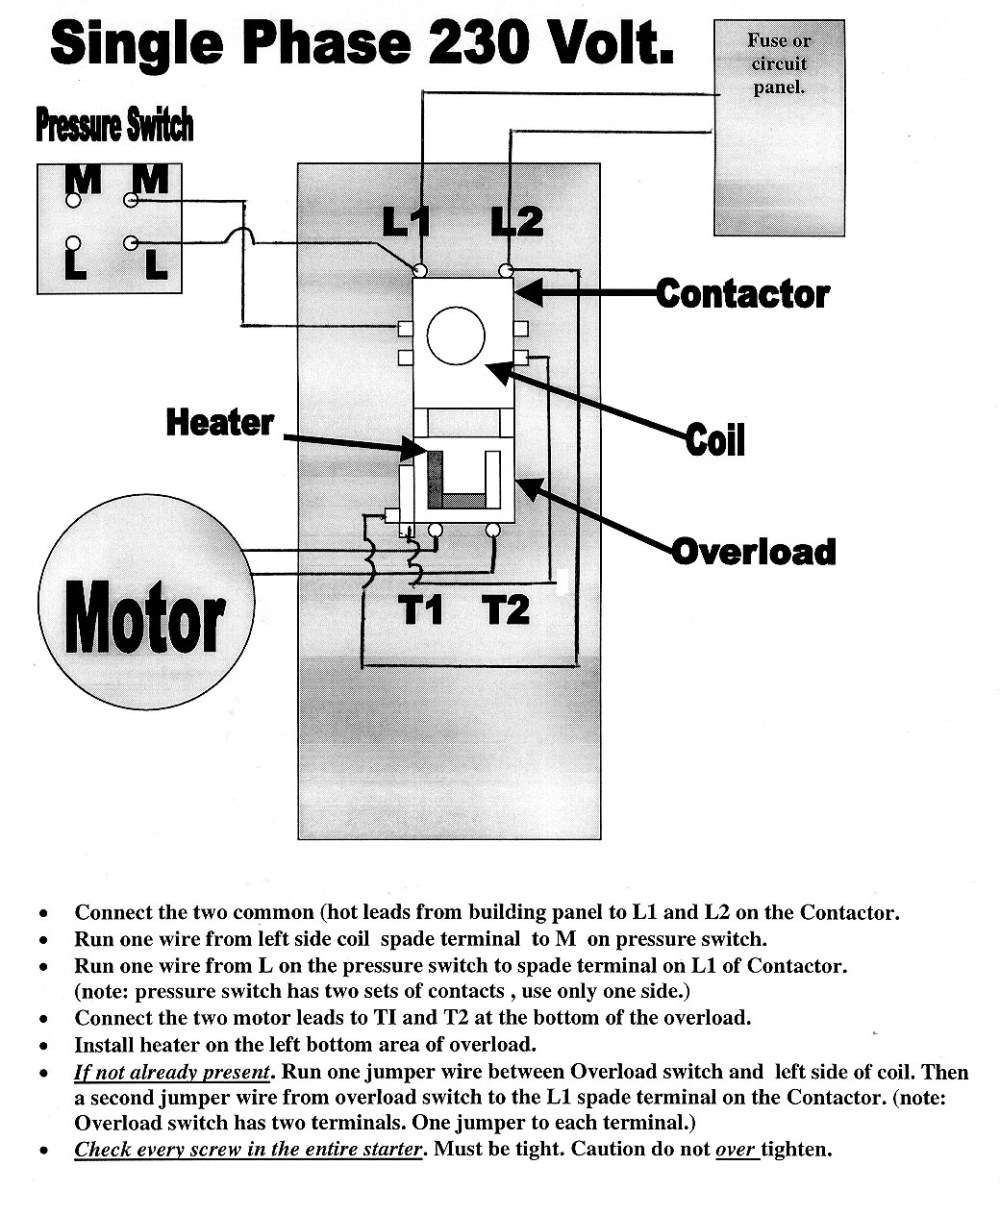 medium resolution of single phase motor starter wiring diagram pdf collection fancy electric motor wiring diagram single phase download wiring diagram